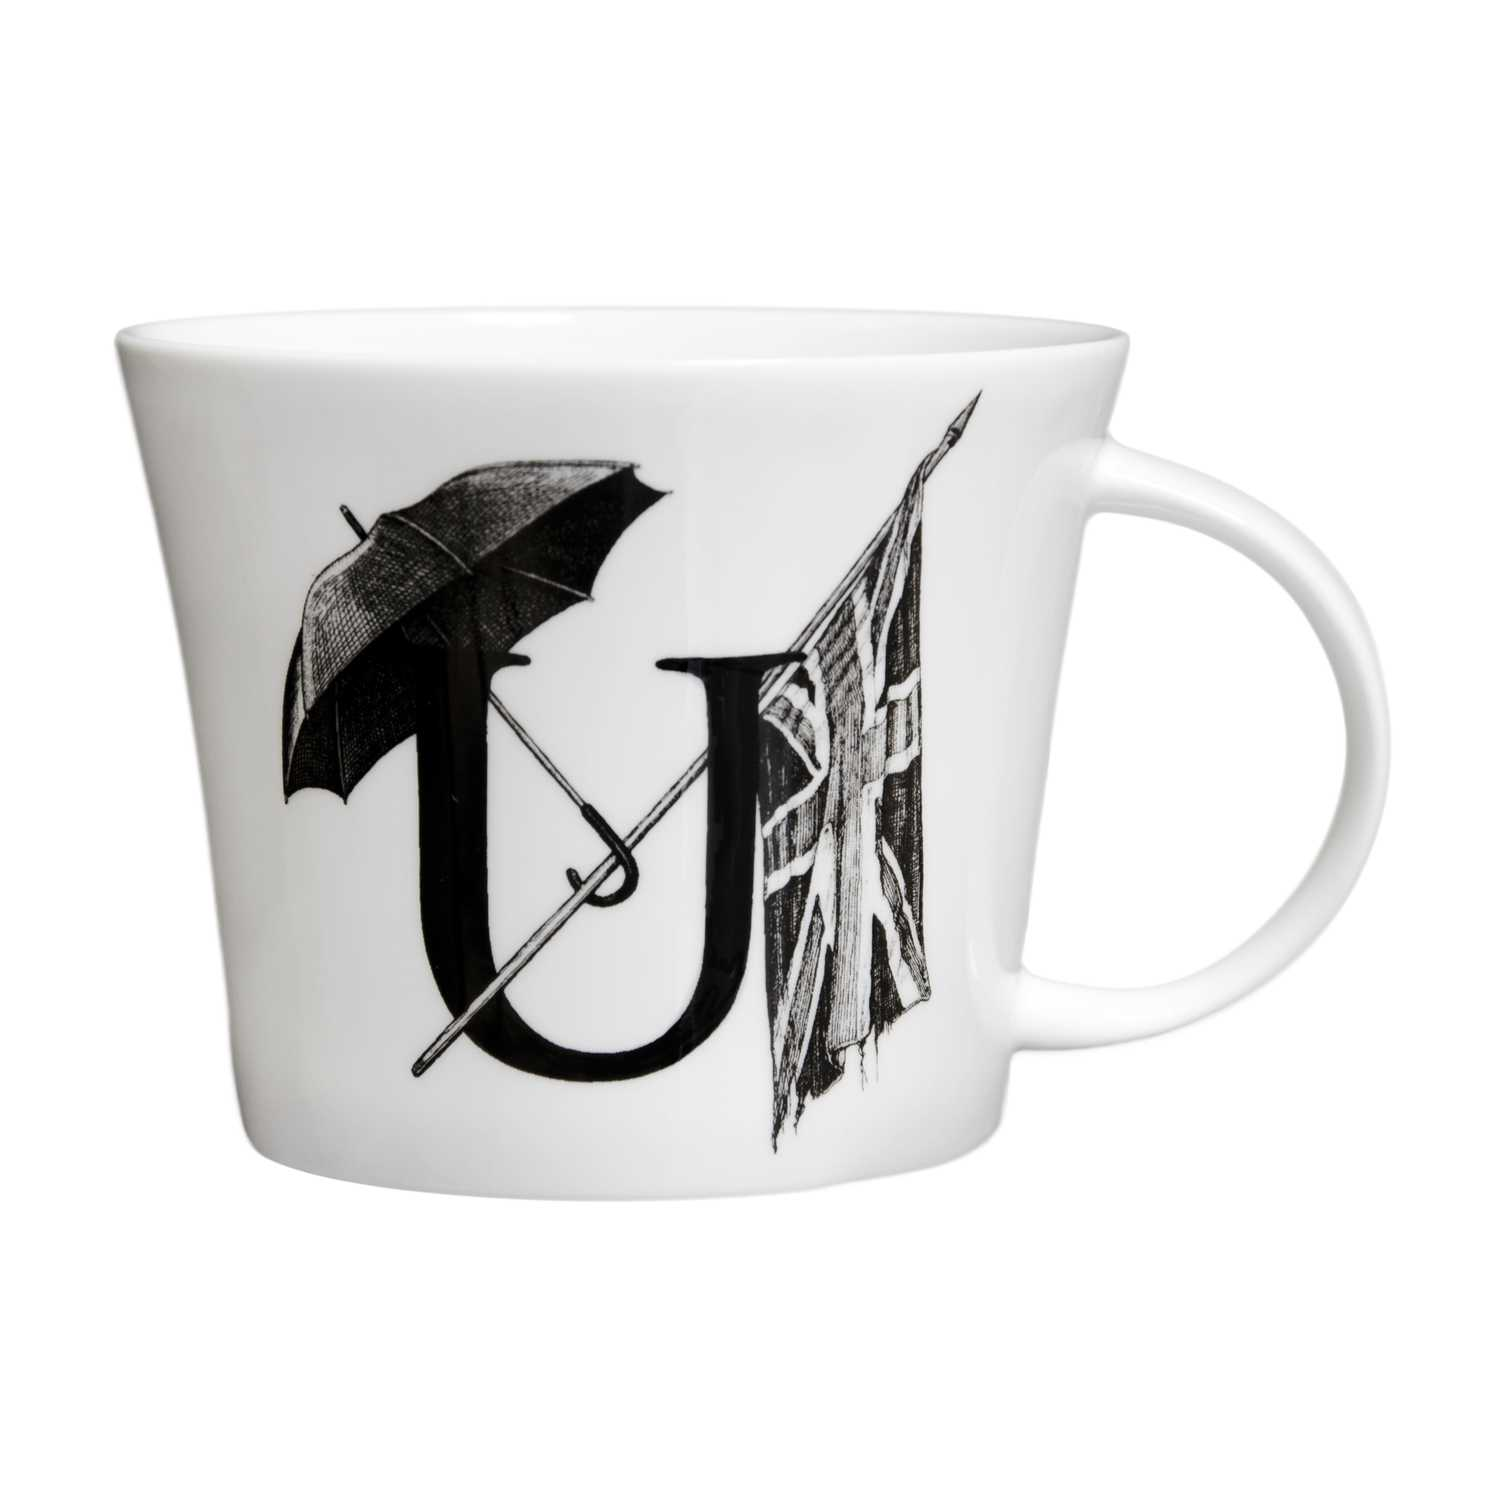 U - Union Of Umbrellas Mighty Mug-0